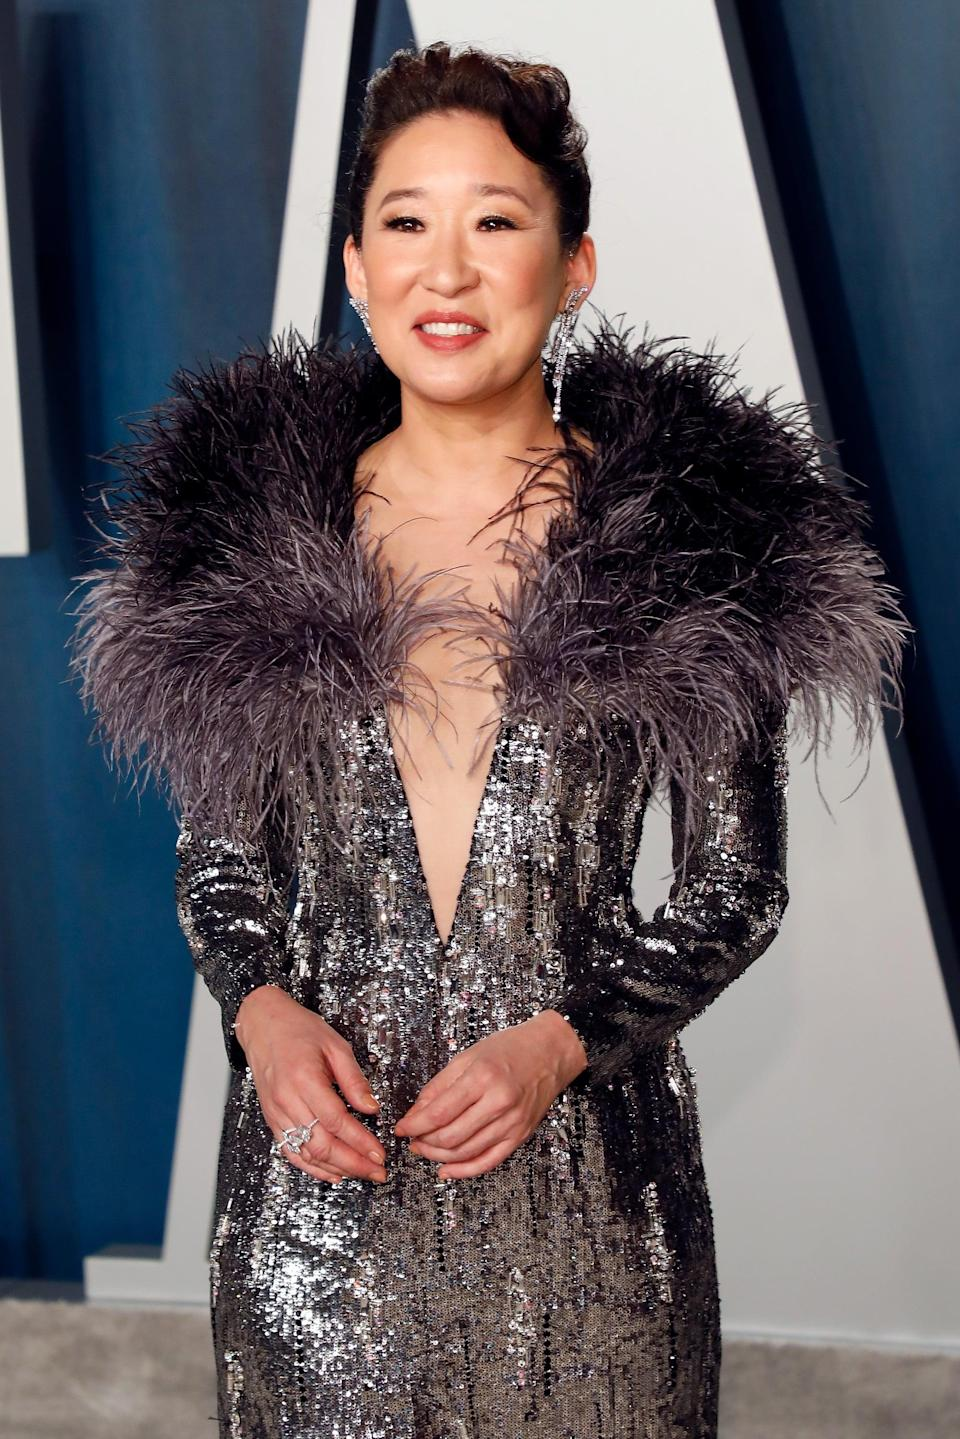 """<p>I don't think I even need to find a reason why <a class=""""link rapid-noclick-resp"""" href=""""https://www.popsugar.com/Sandra-Oh"""" rel=""""nofollow noopener"""" target=""""_blank"""" data-ylk=""""slk:Sandra Oh"""">Sandra Oh</a>'s Christina could come back. It's a day that ends in """"y,"""" how's that for a reason!? It seems too good to be true that Oh is listed as being part of the show in 2020, but if this season is Meredith and Pompeo's swan song, she absolutely <em>has</em> to make an appearance. If there's anyone who would appear at Meredith's bedside while she's deathly ill, it's her person!</p>"""